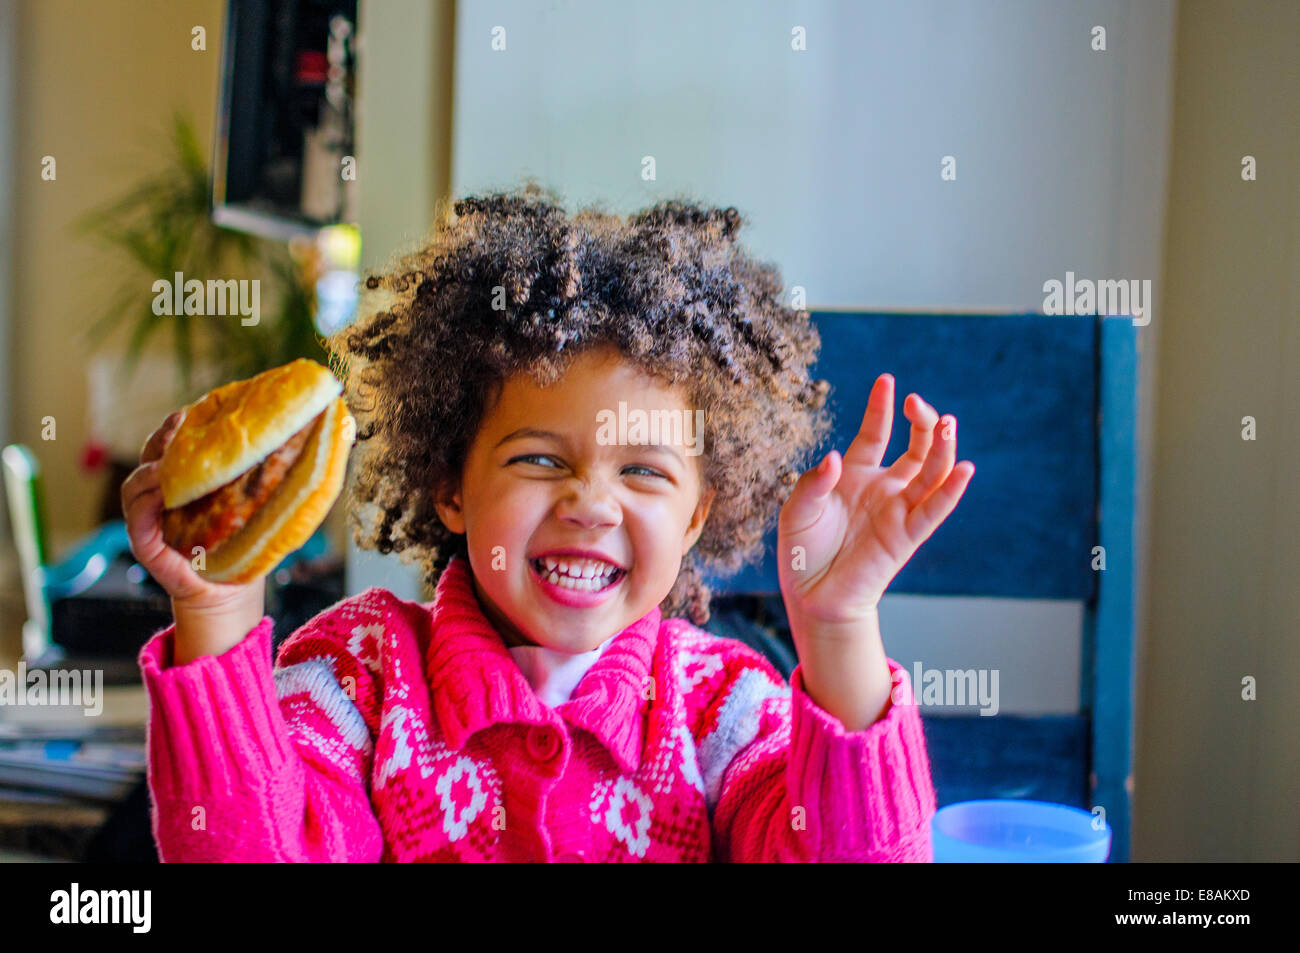 Cute girl laughing and holding up hamburger in kitchen - Stock Image